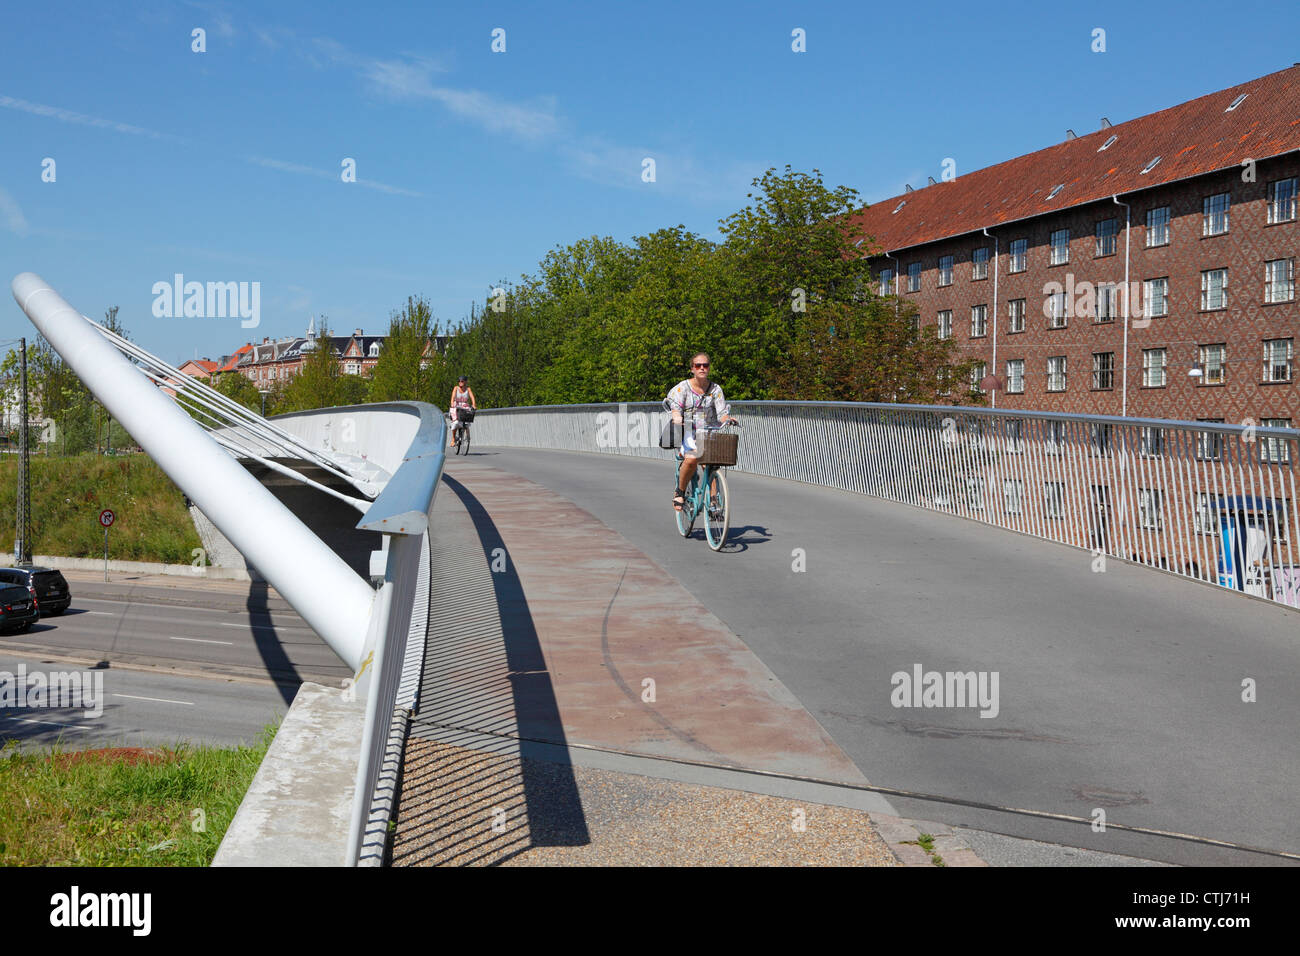 Aabuen, the bridge is part of the 8km long green bicycle route connecting Copenhagen neighbourhoods Nørrebro - Stock Image